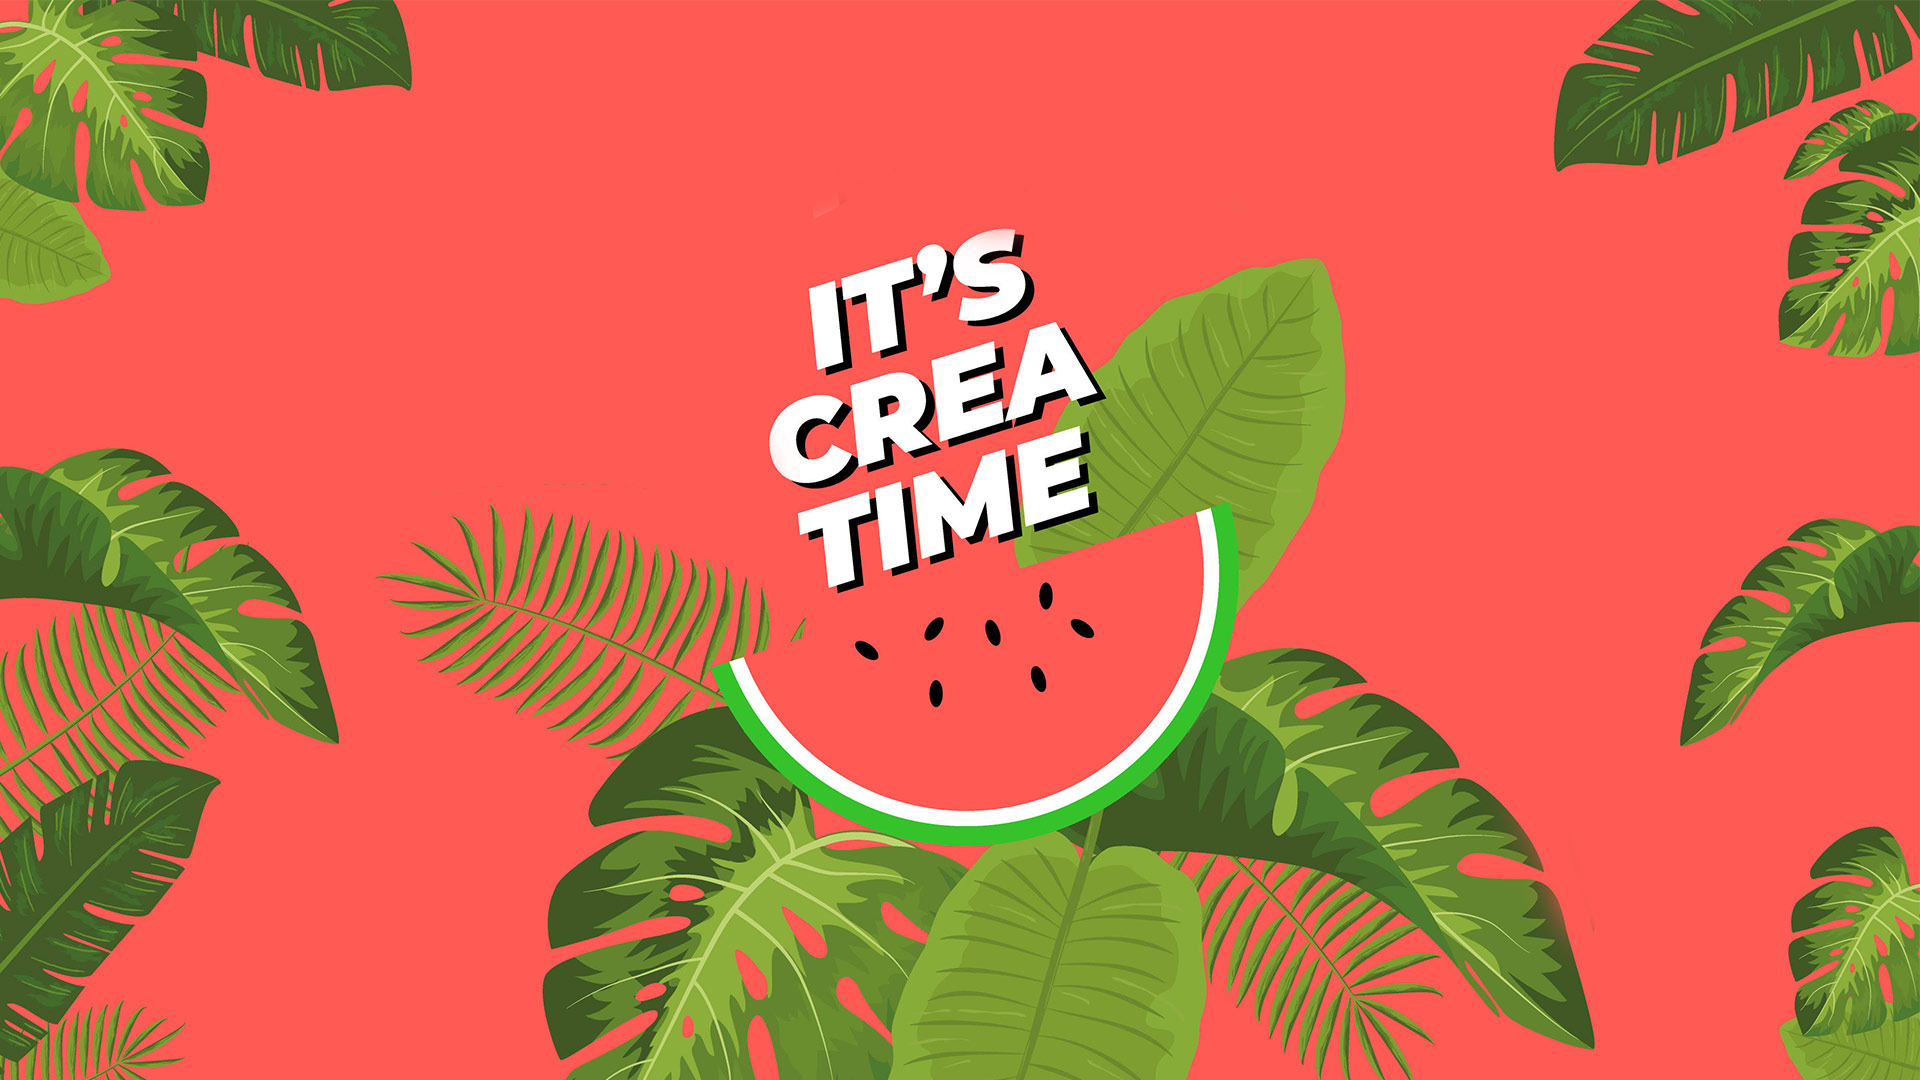 crea_time_event_illustration